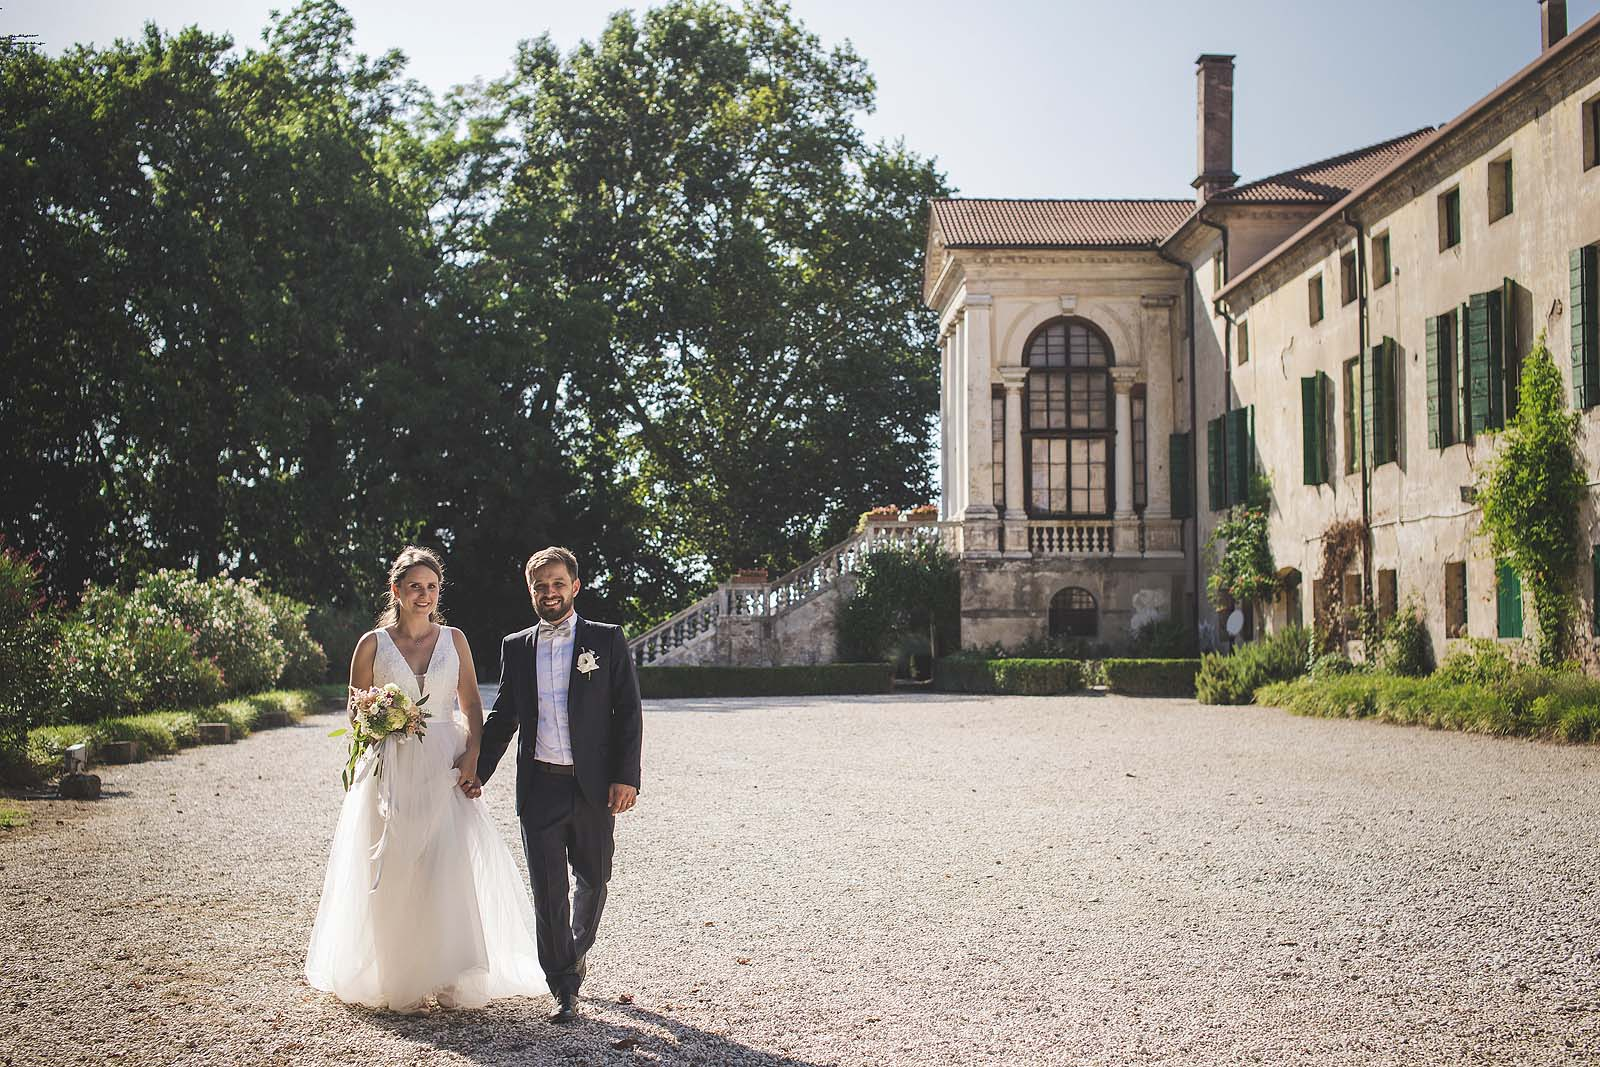 Wedding Photography in Italy at a Venetian Villa